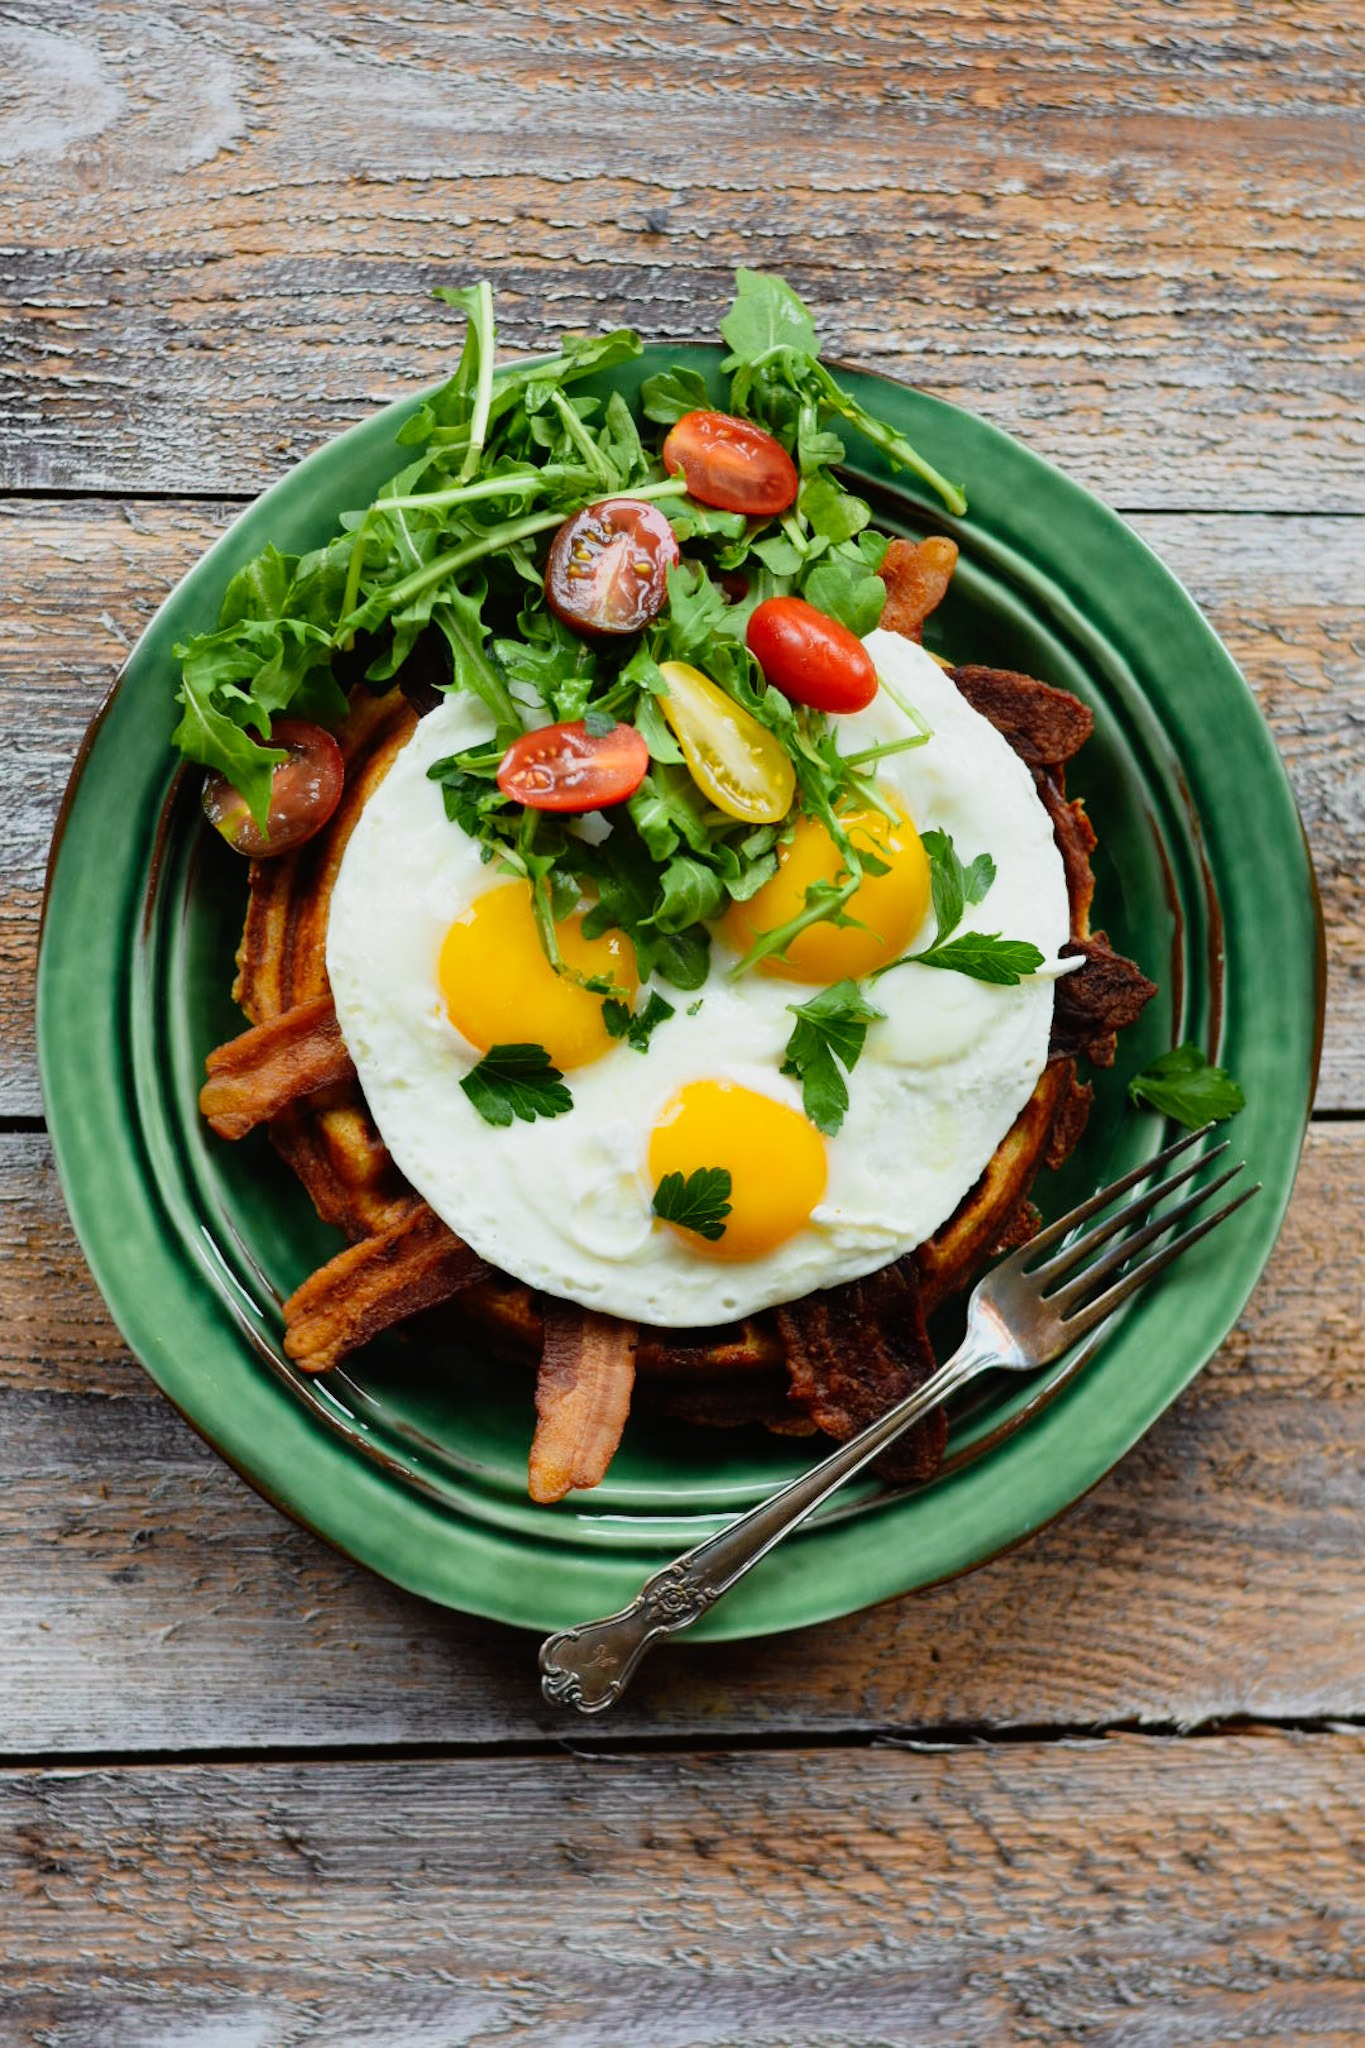 Waffle, bacon, eggs, tomato and arugula on a green plate